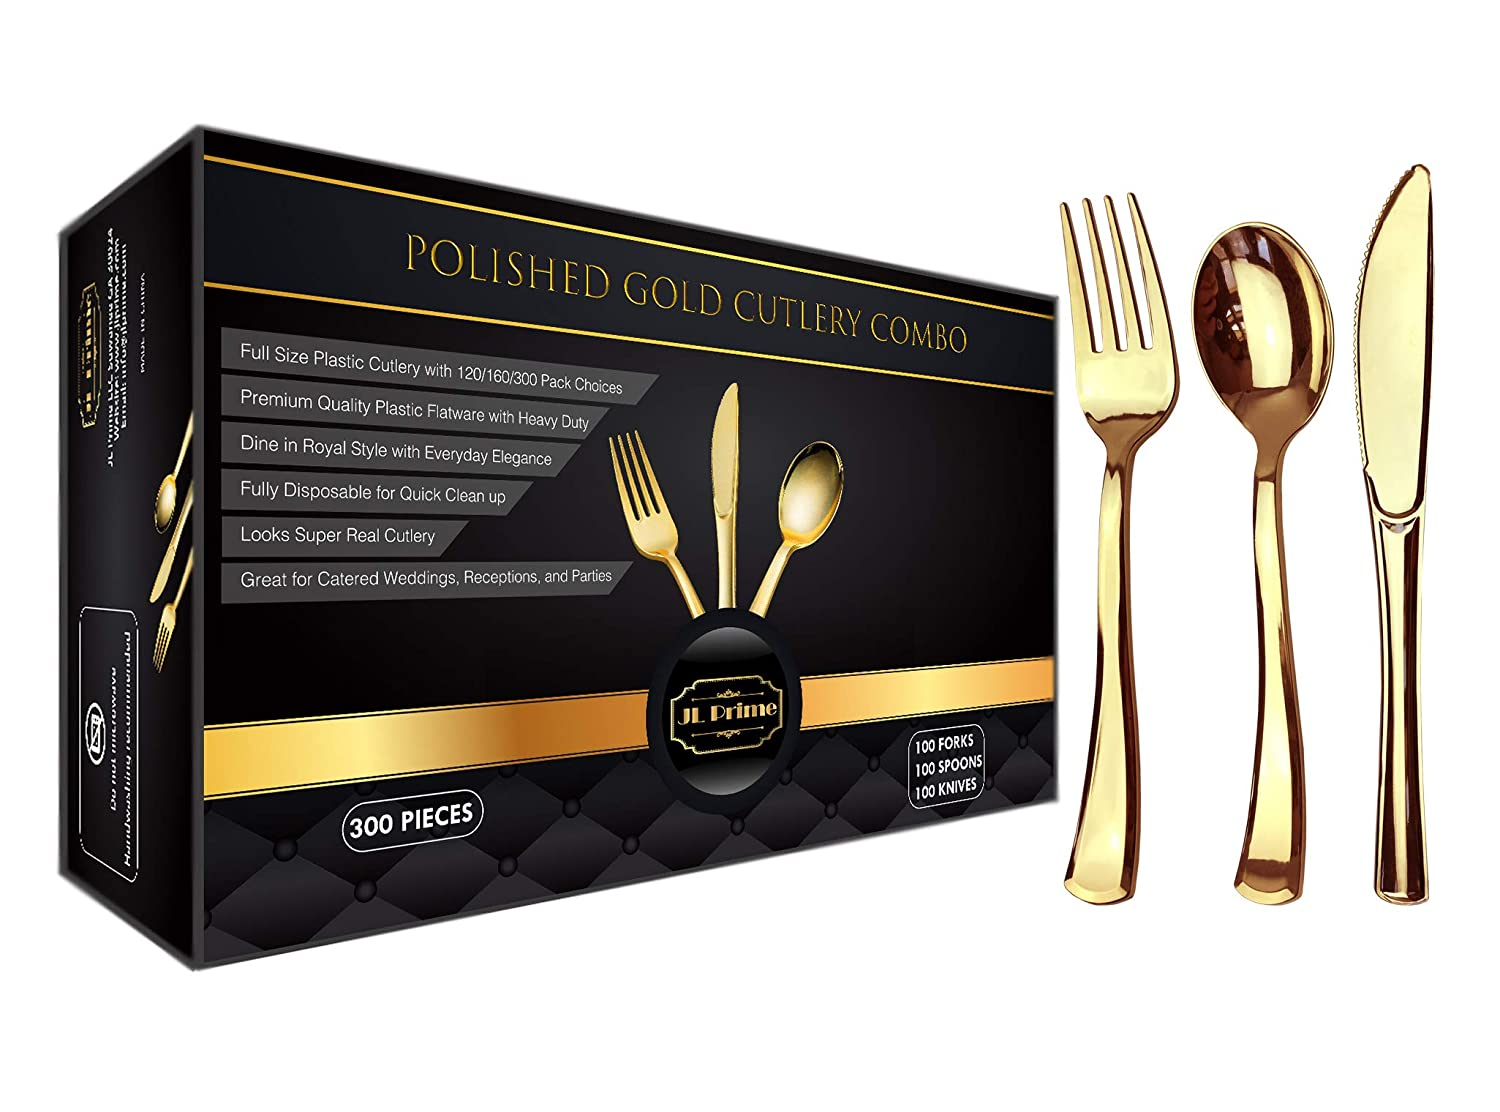 300 Gold Plastic Silverware Set, Gold Plastic Cutlery Set, Heavy Duty Utensils for Party & Wedding, Disposable Gold Flatware, Gold Plastic Forks, Gold Plastic Spoons, Gold Plastic Knives,100 Each